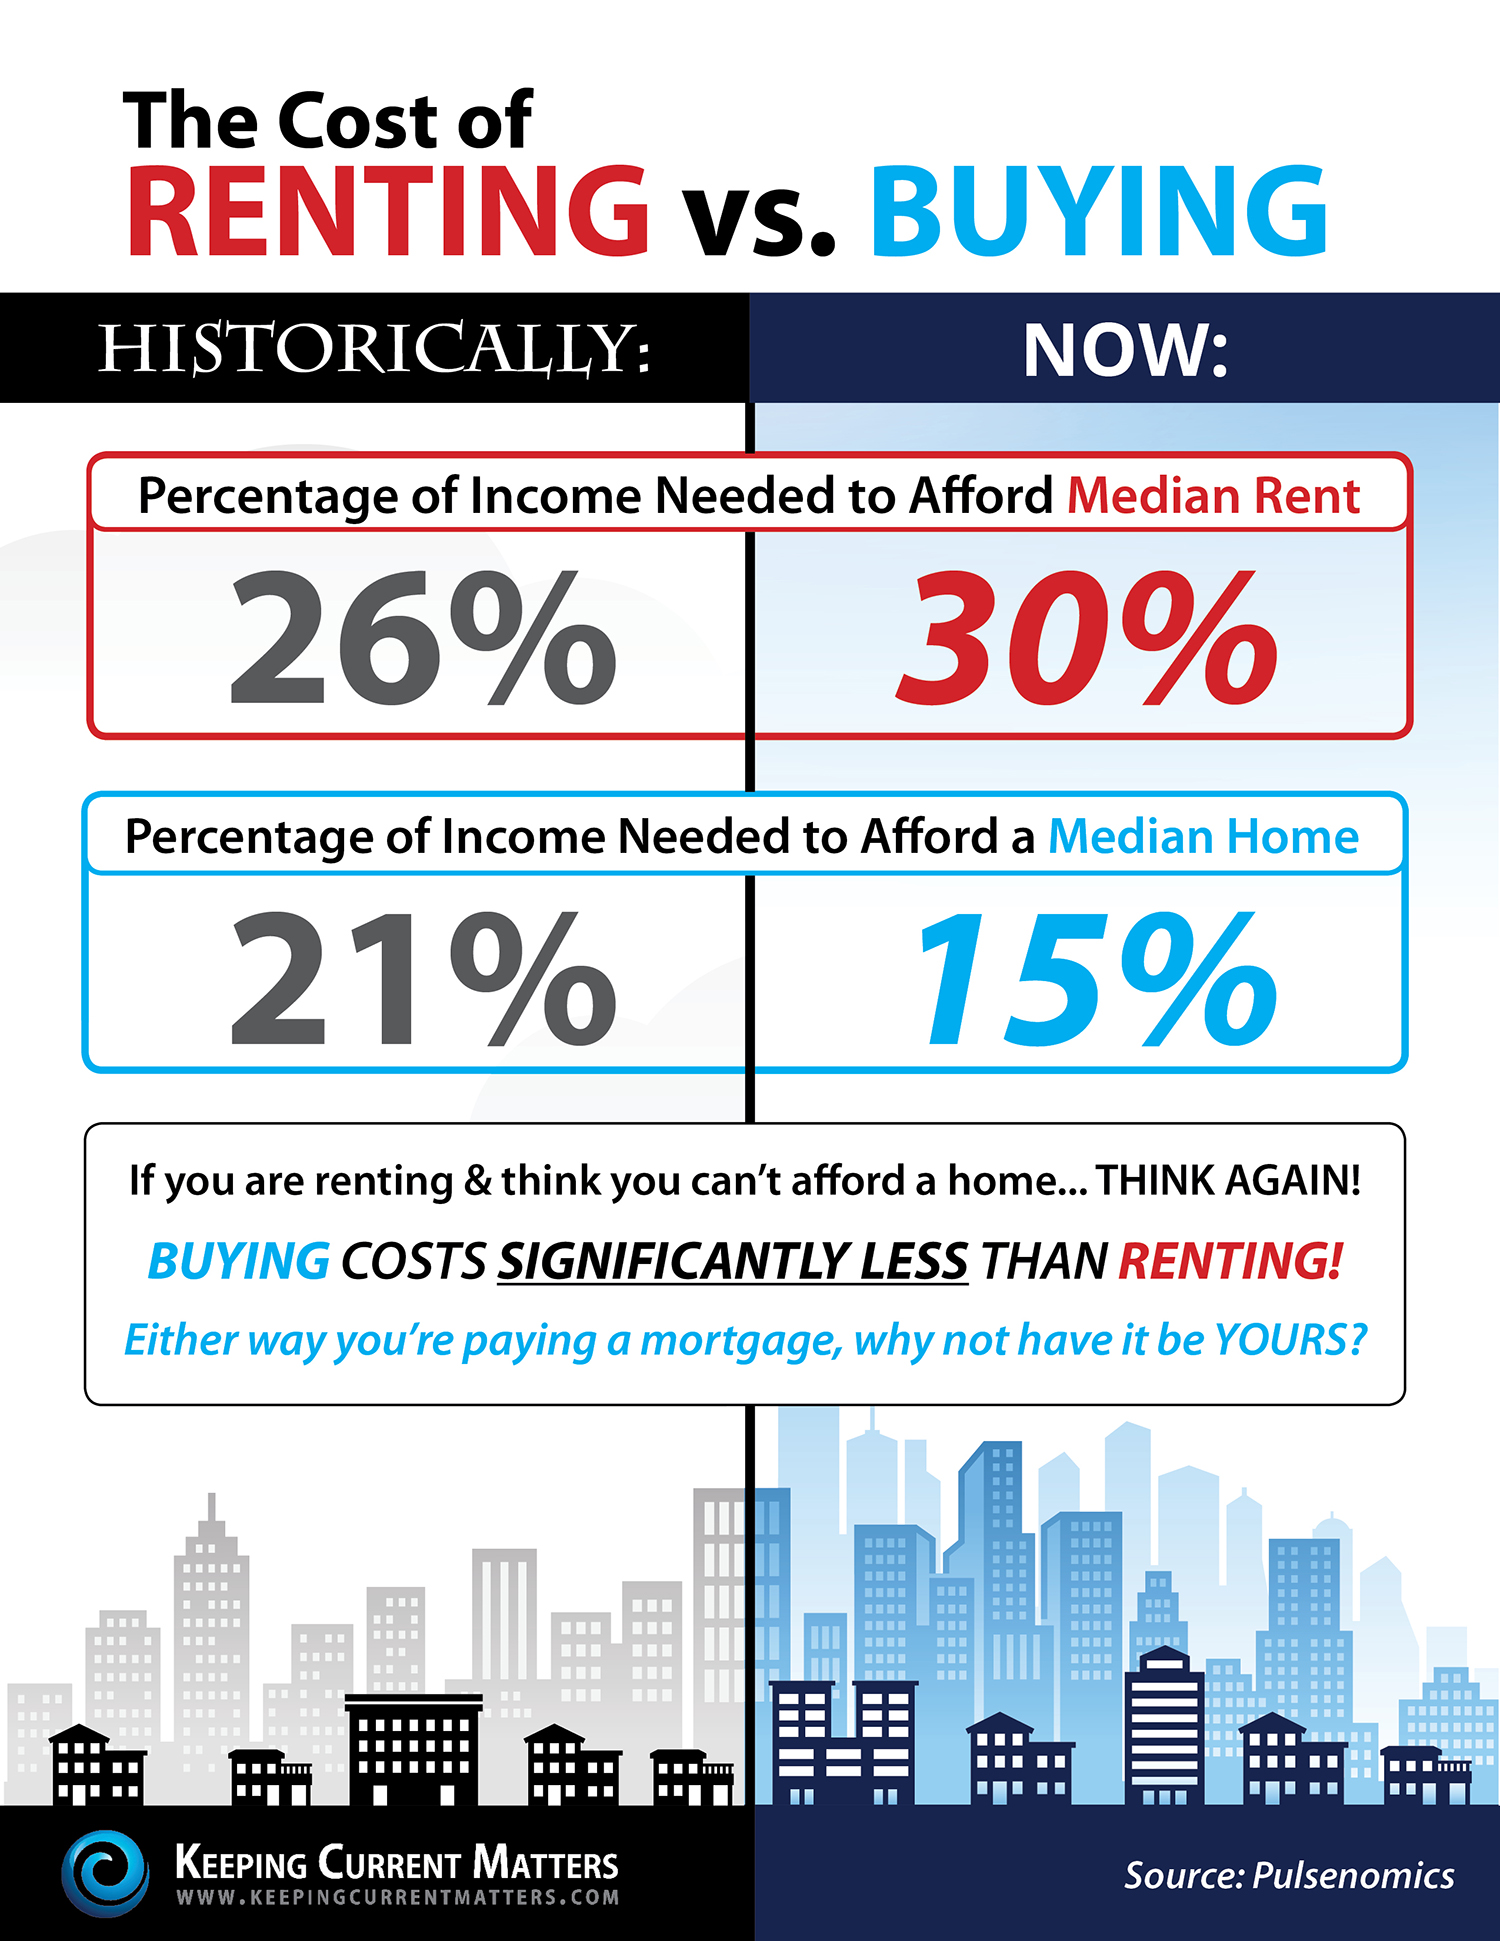 http://www.keepingcurrentmatters.com/wp-content/uploads/2016/05/Rent-vs.-Buy-KCM.jpg